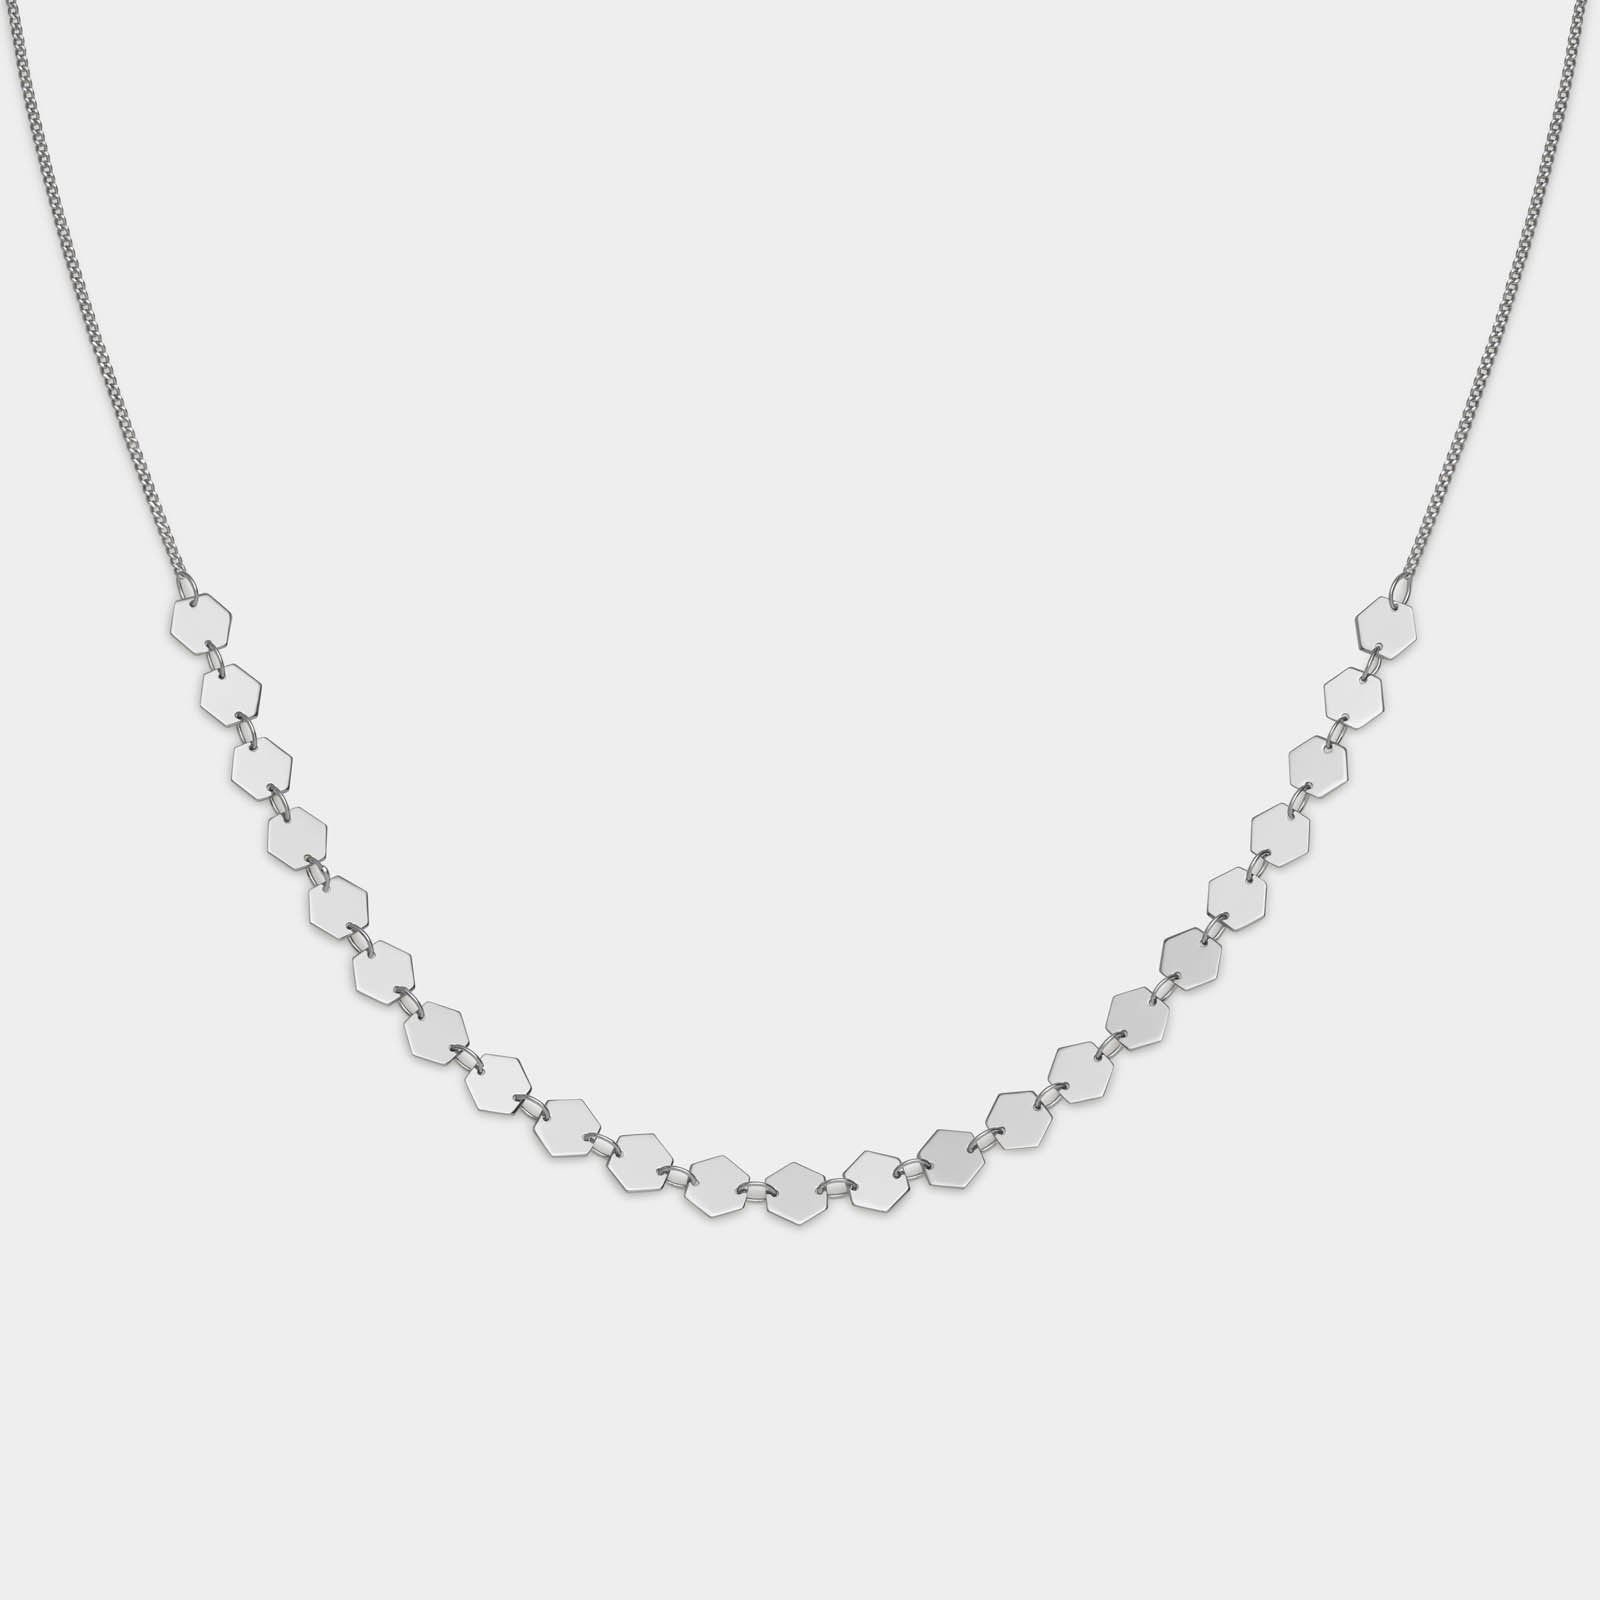 CLUSE Essentielle Silver All Hexagons Choker Necklace CLJ22003 - Collana